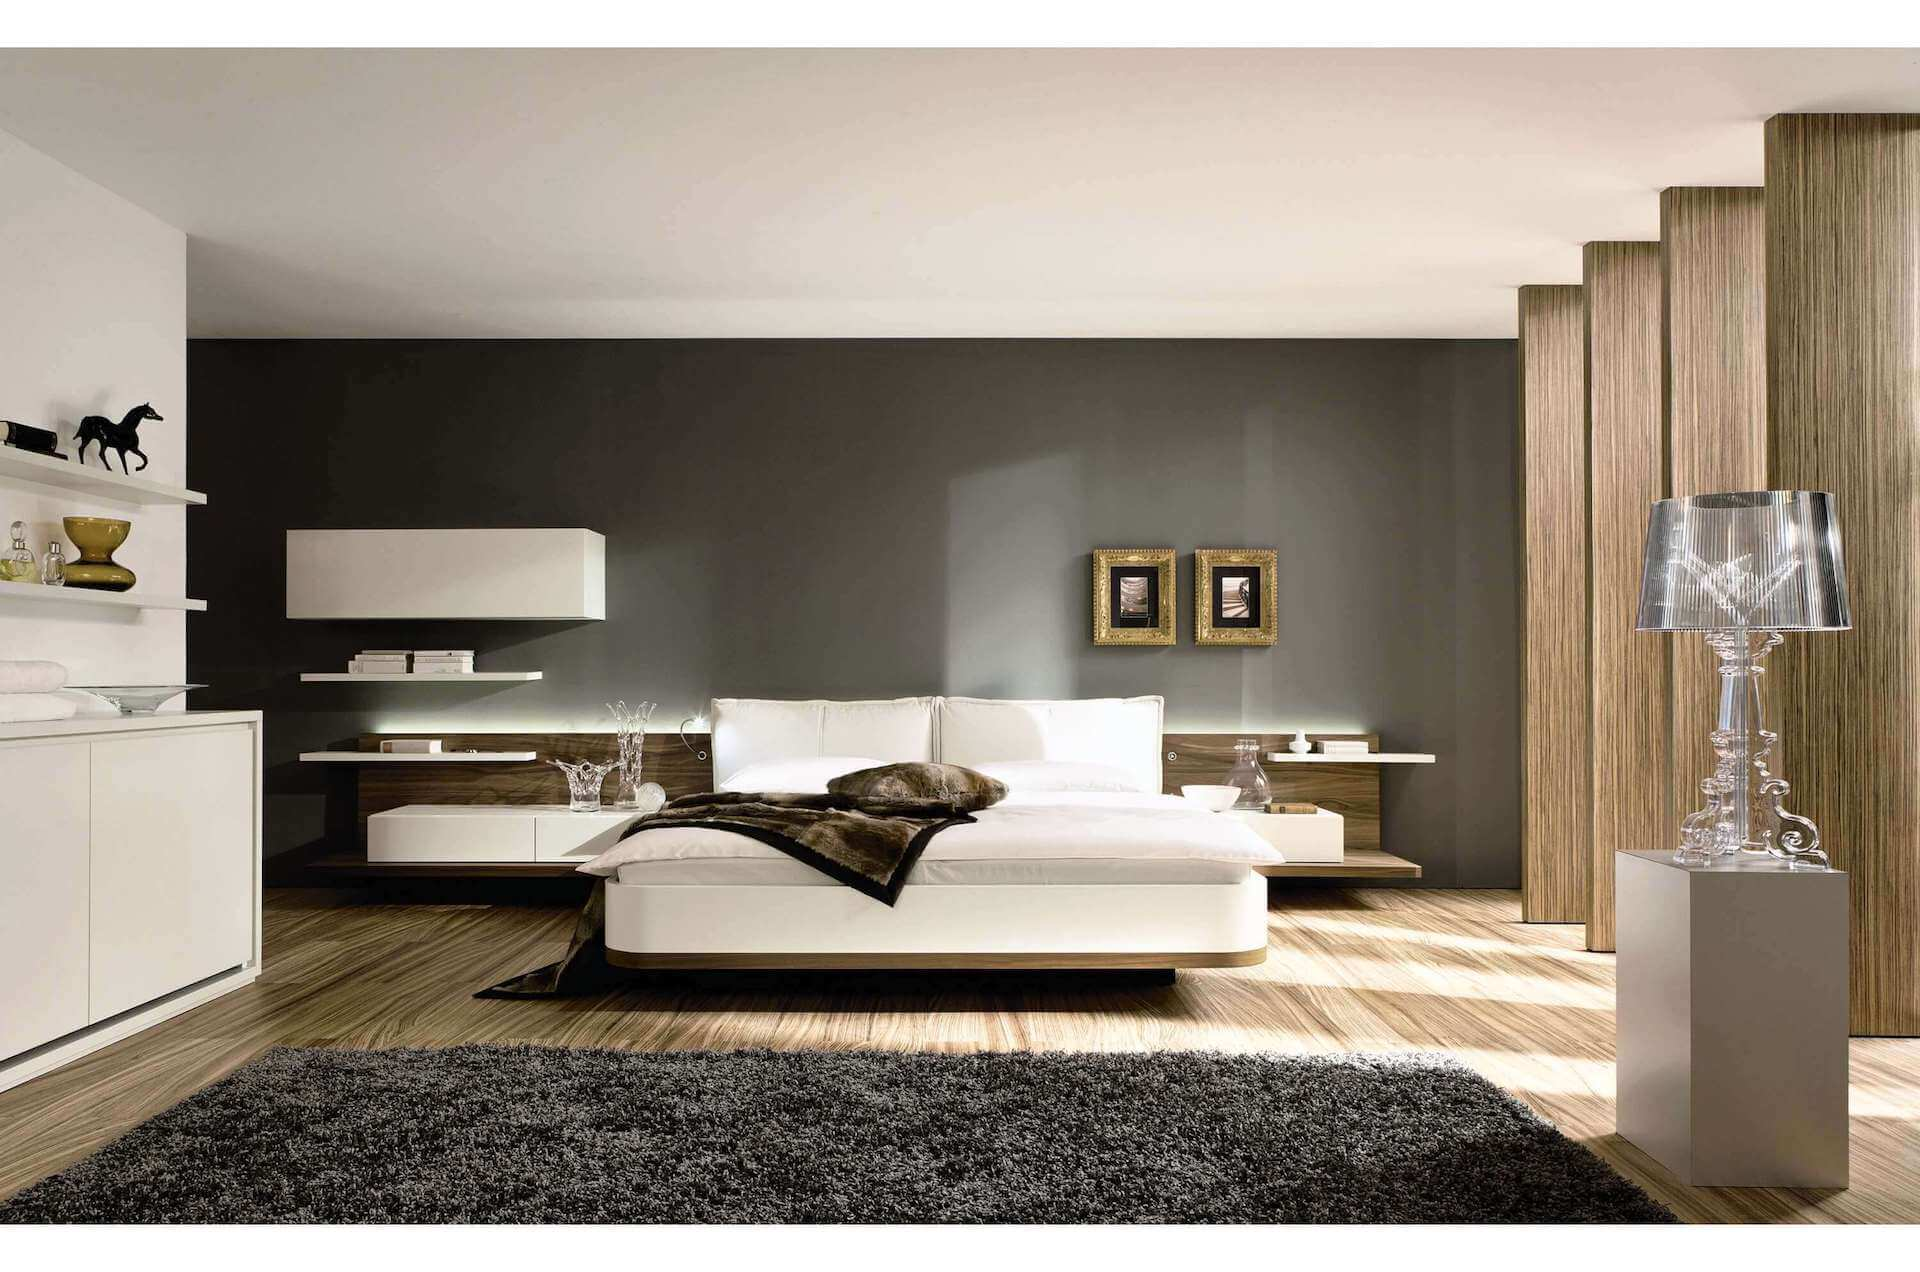 modern-bedroom-ideas-For-decorating-home-design-with-a-minimalist-idea-Bedroom-furniture-beauty-erstaunlich-luxury-and-attractive-11.jpg